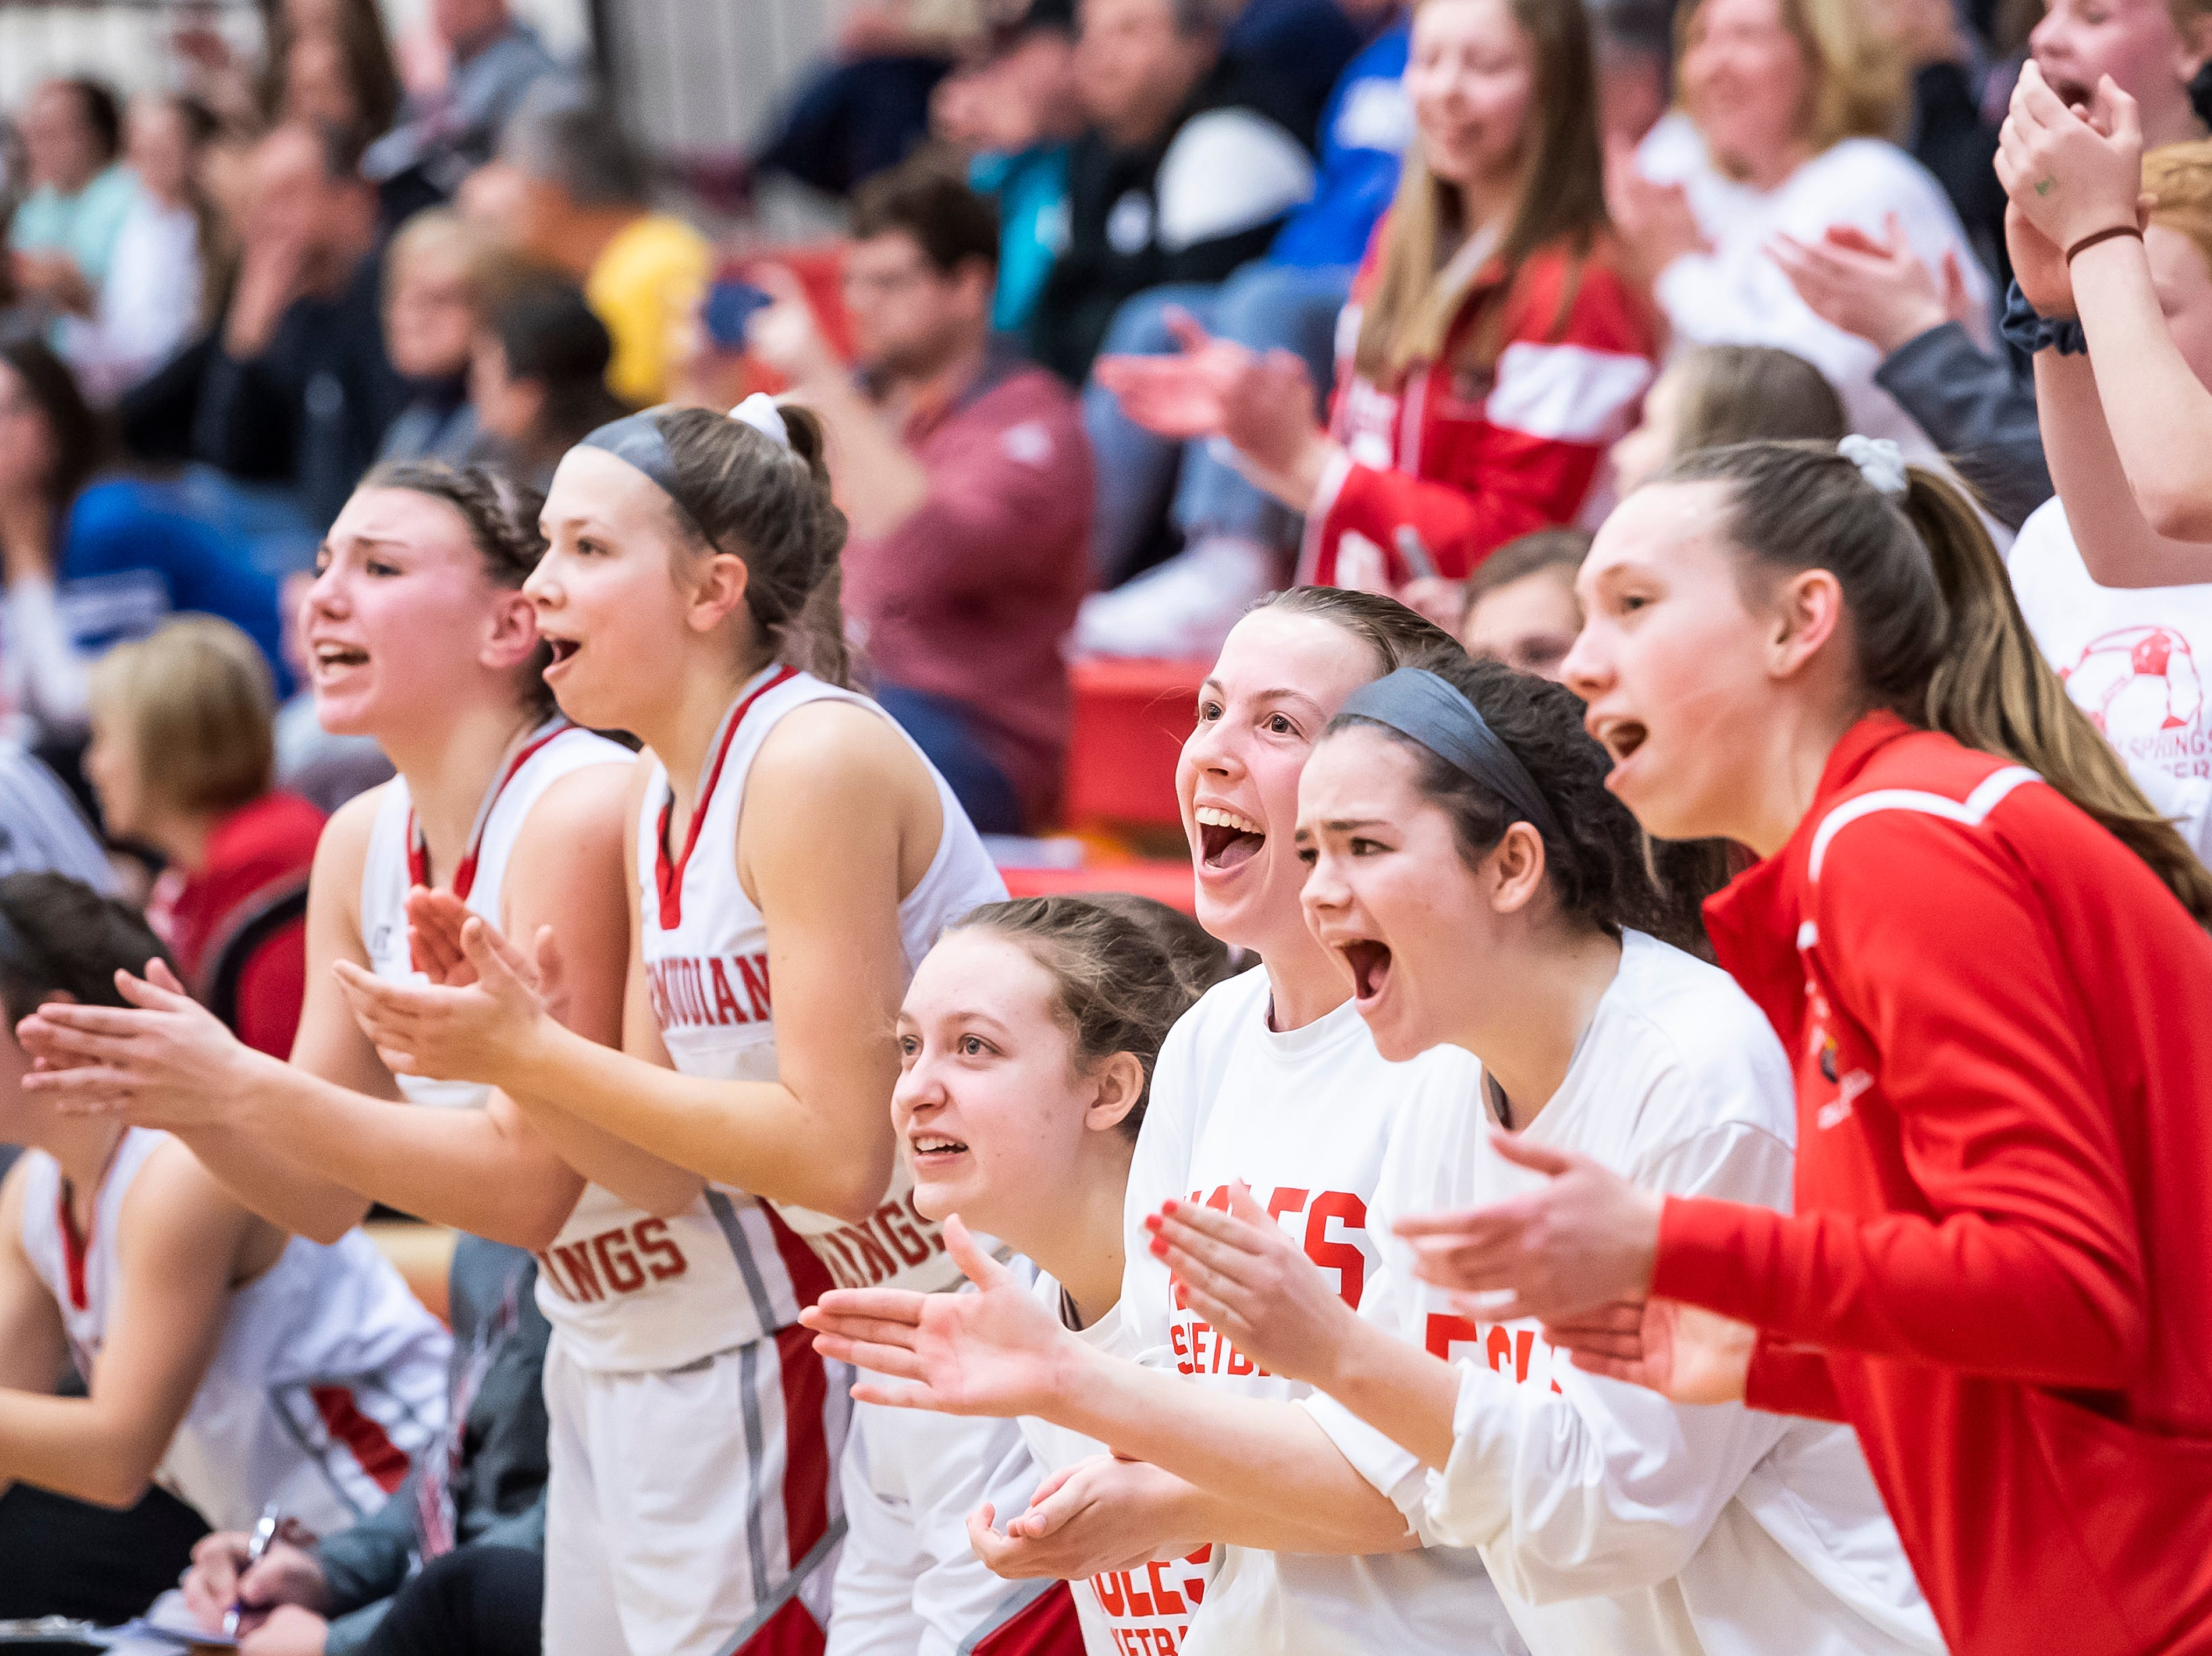 The Bermudian Springs bench cheers after Hannah Chenault drains a 3-pointer against Northern Lebanon in the first round of the District III 4-A playoffs Tuesday, February 19, 2019. The Eagles won 58-52.